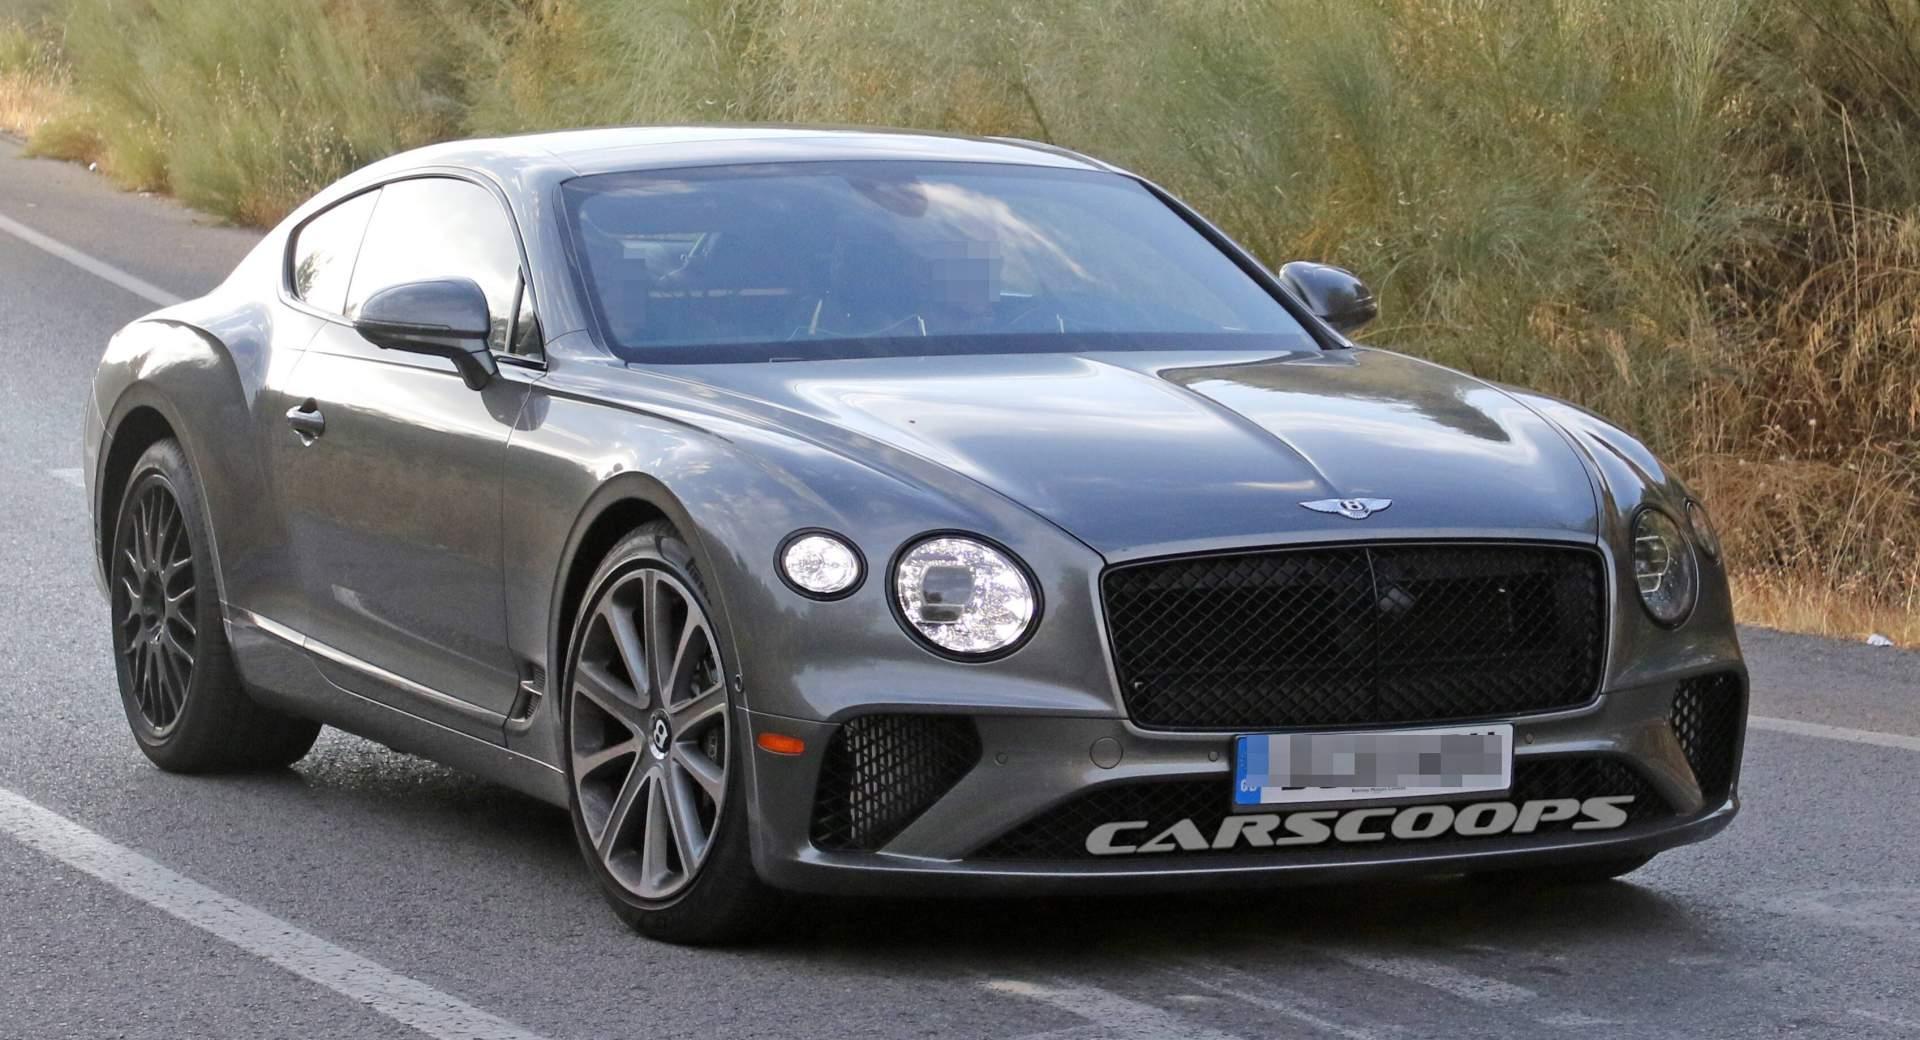 2020 Bentley Continental Gt Speed Spied Mixing Wheel Sets